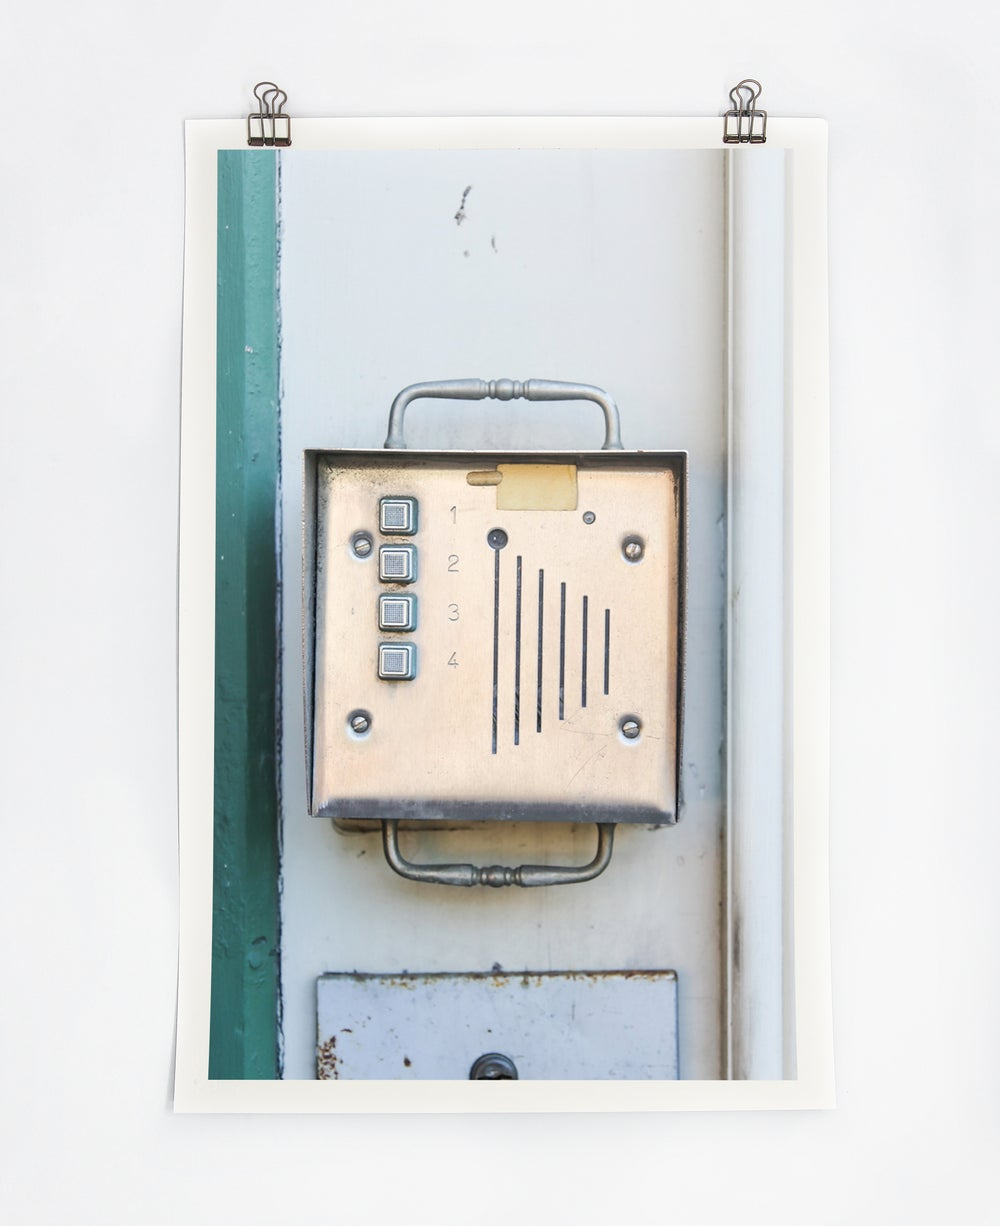 Image of Buzzer with Handles